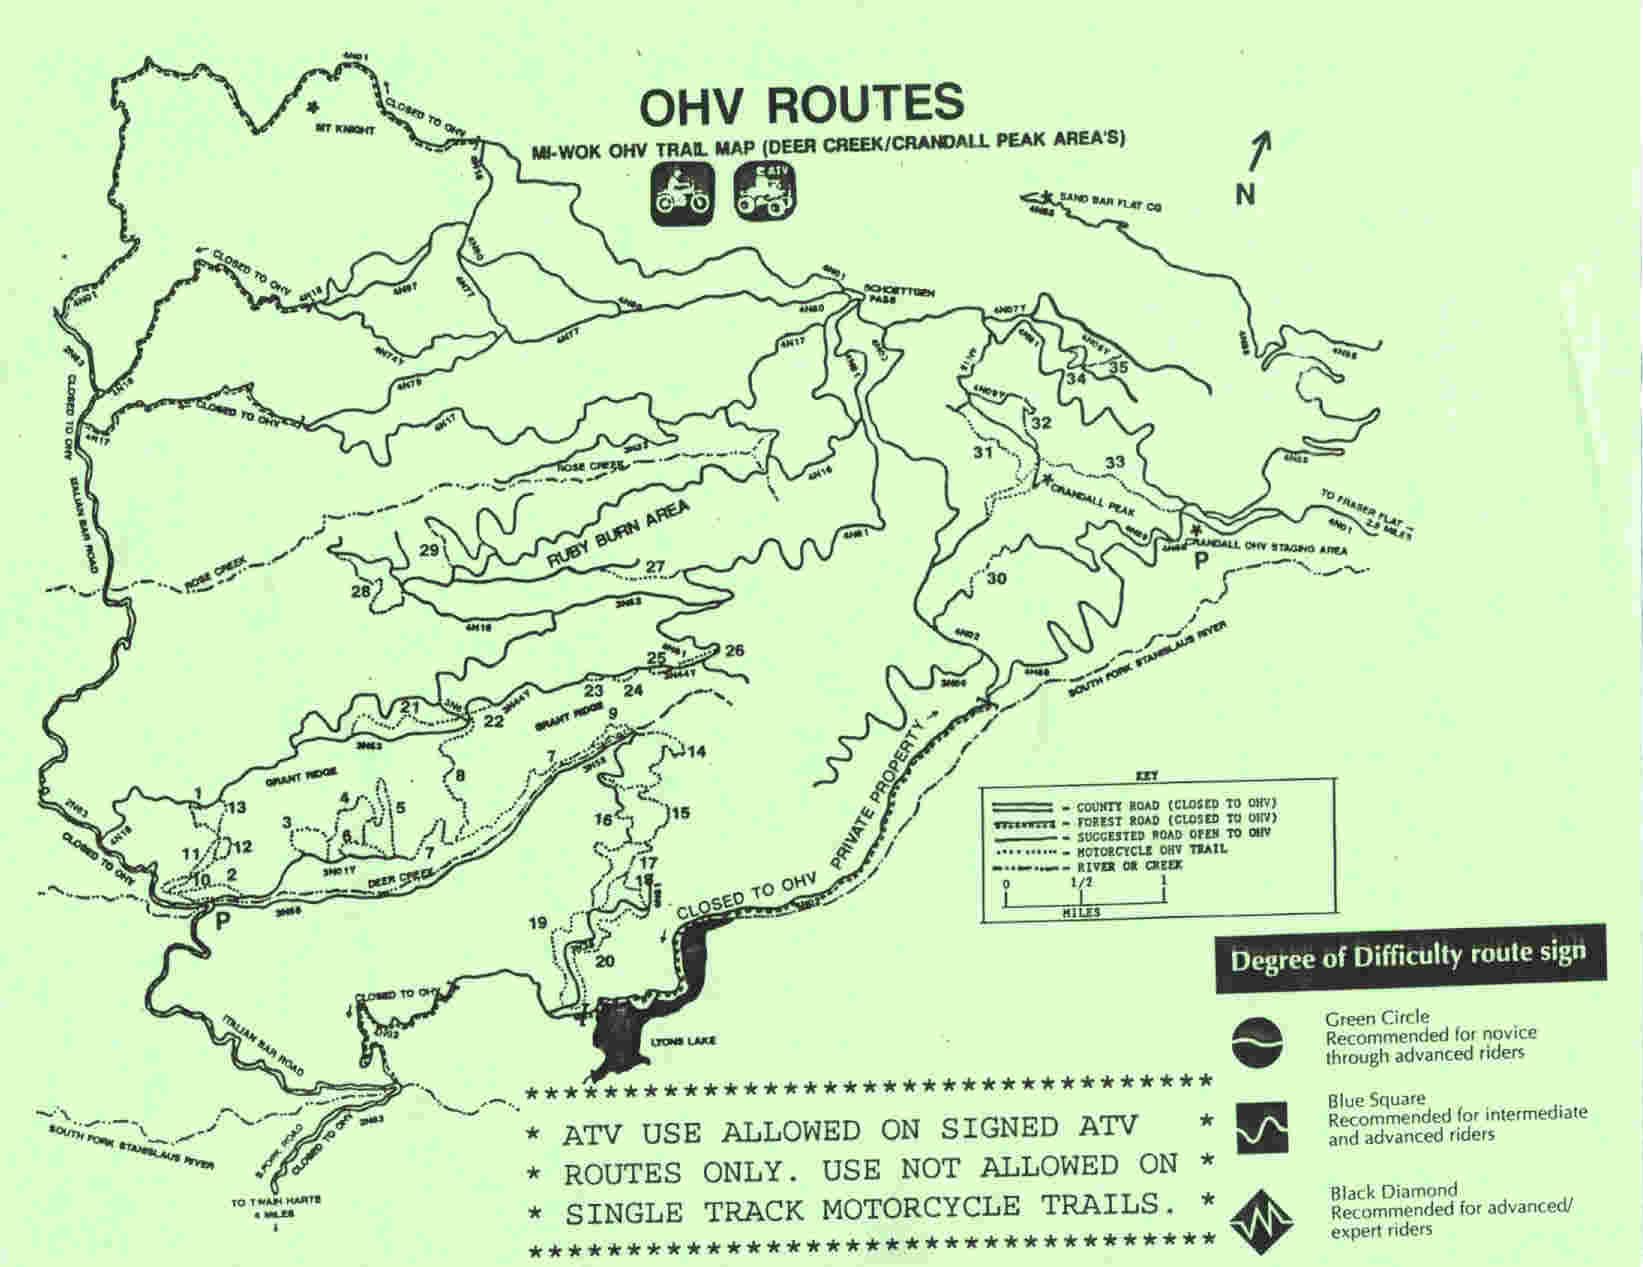 MiWok OHV Trail Map merced ca mappery